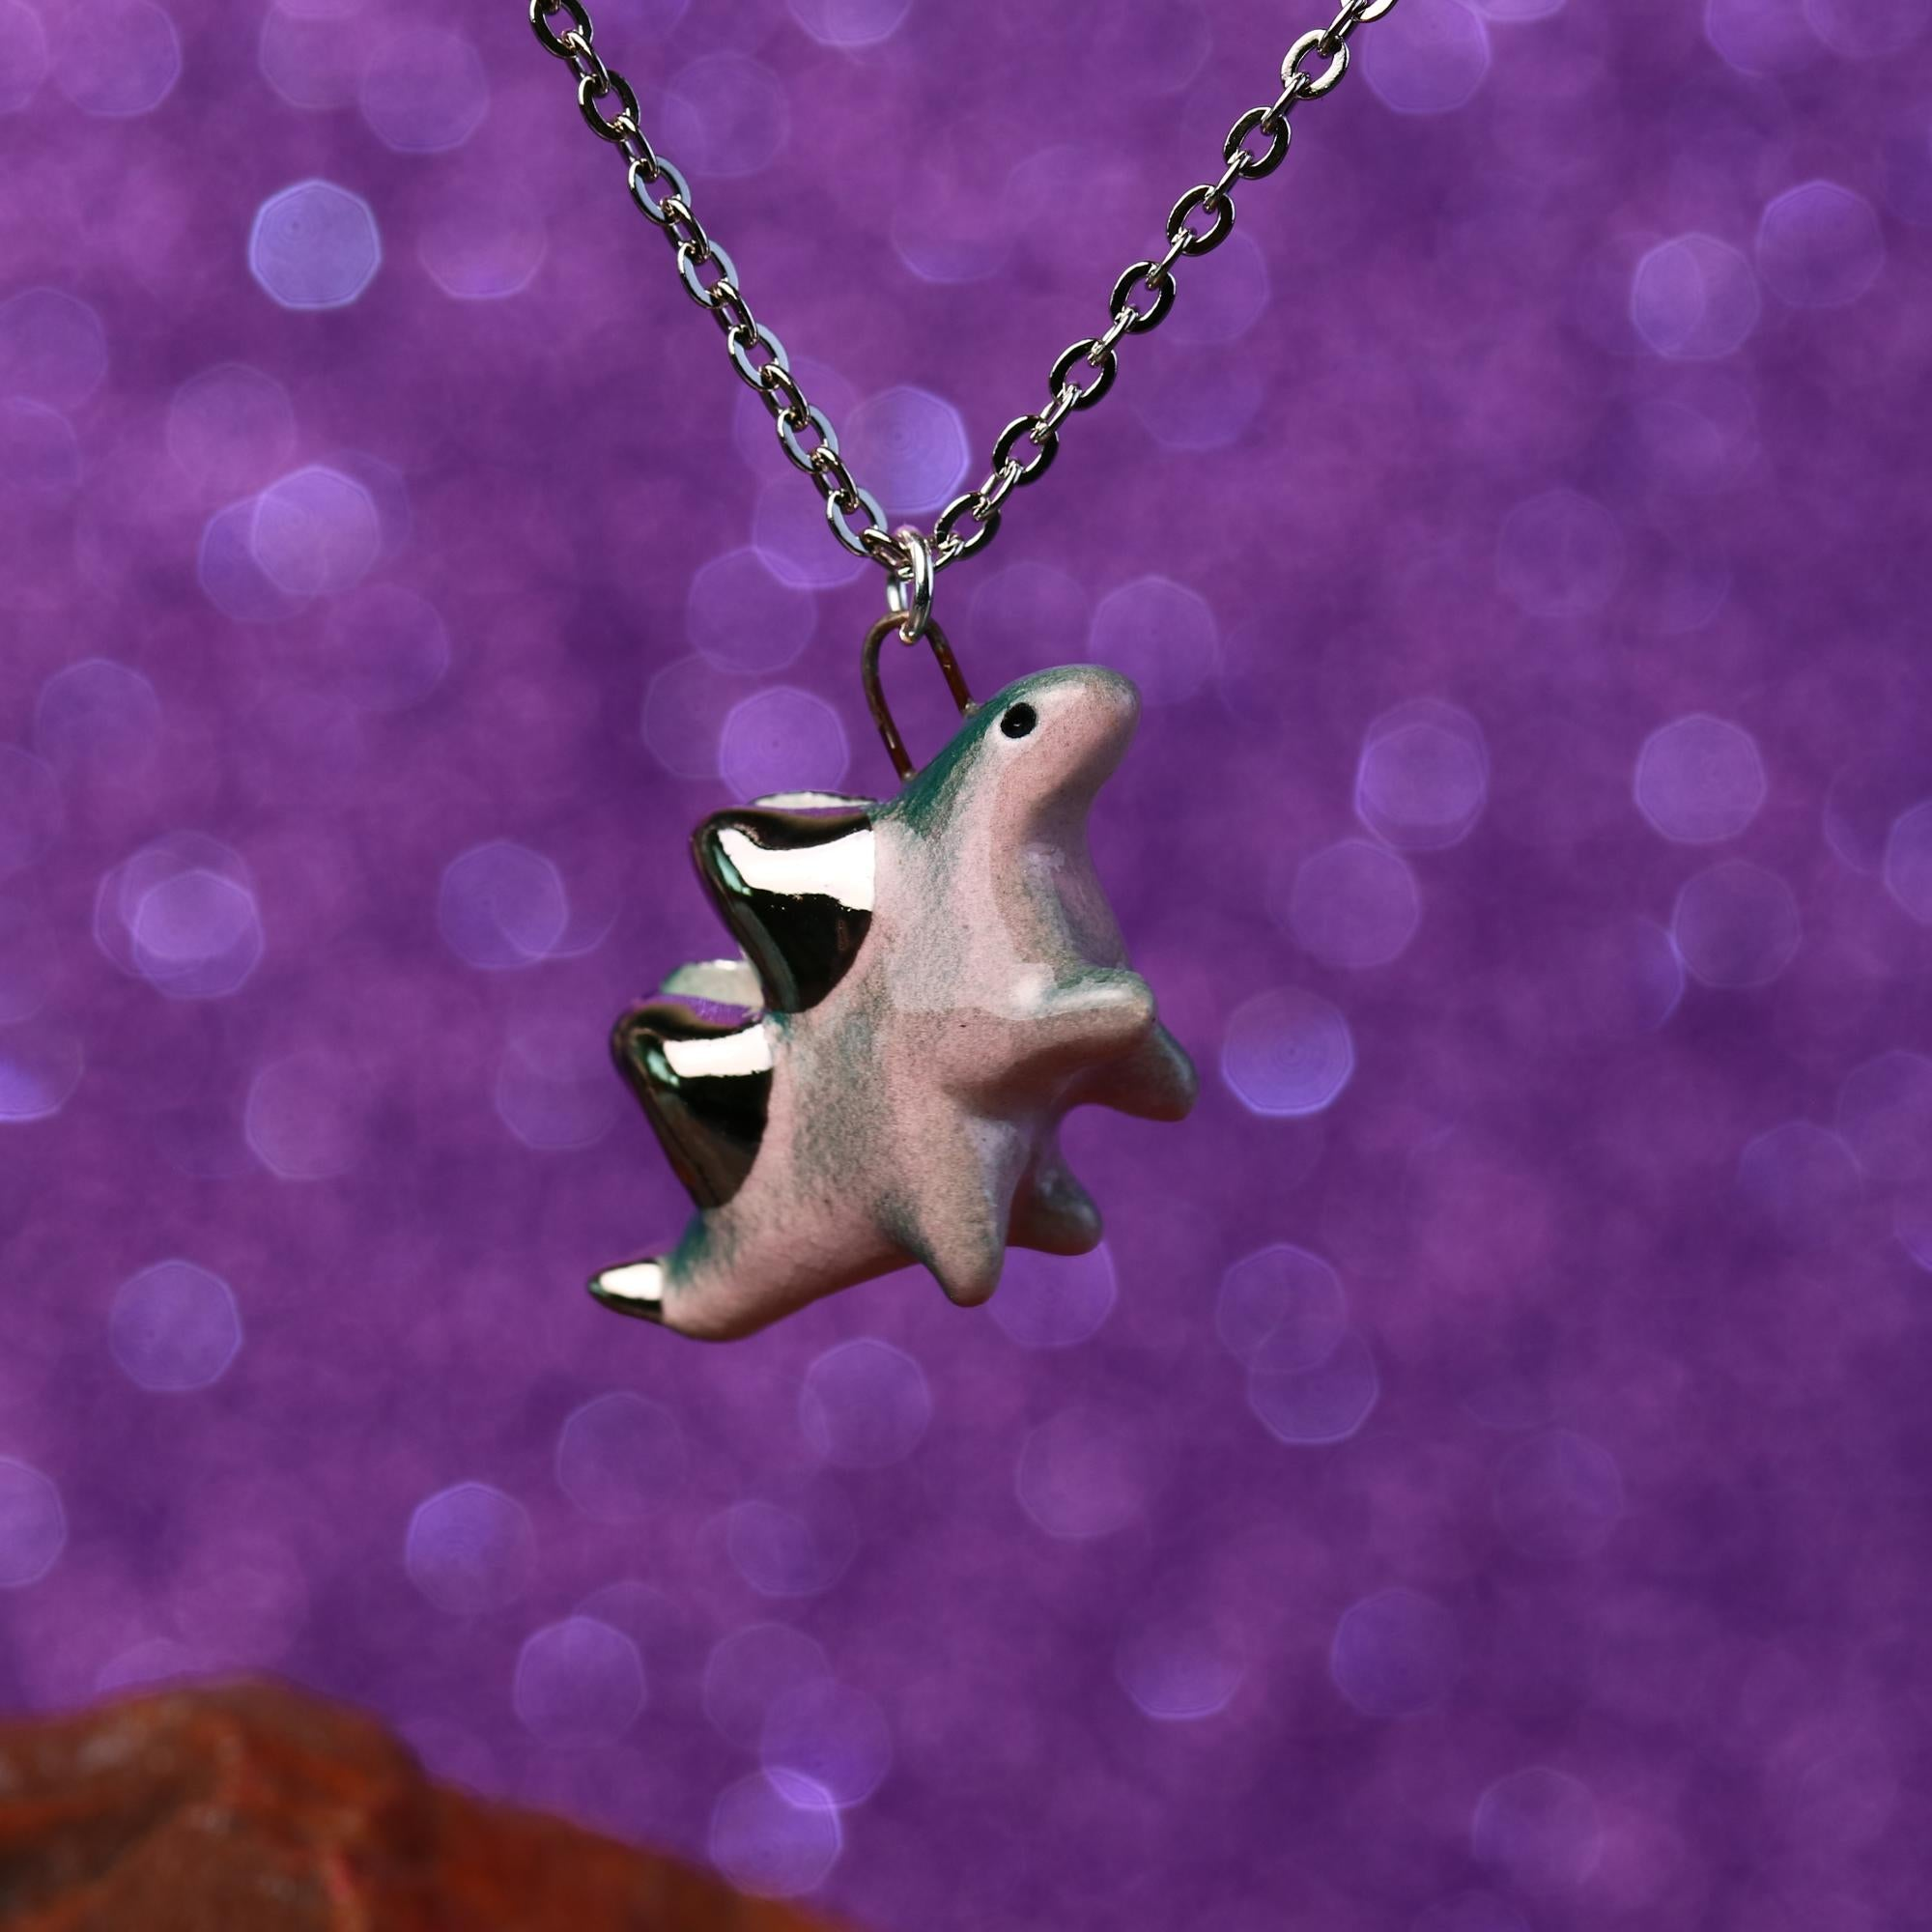 Dancing Stegosaurus Necklace